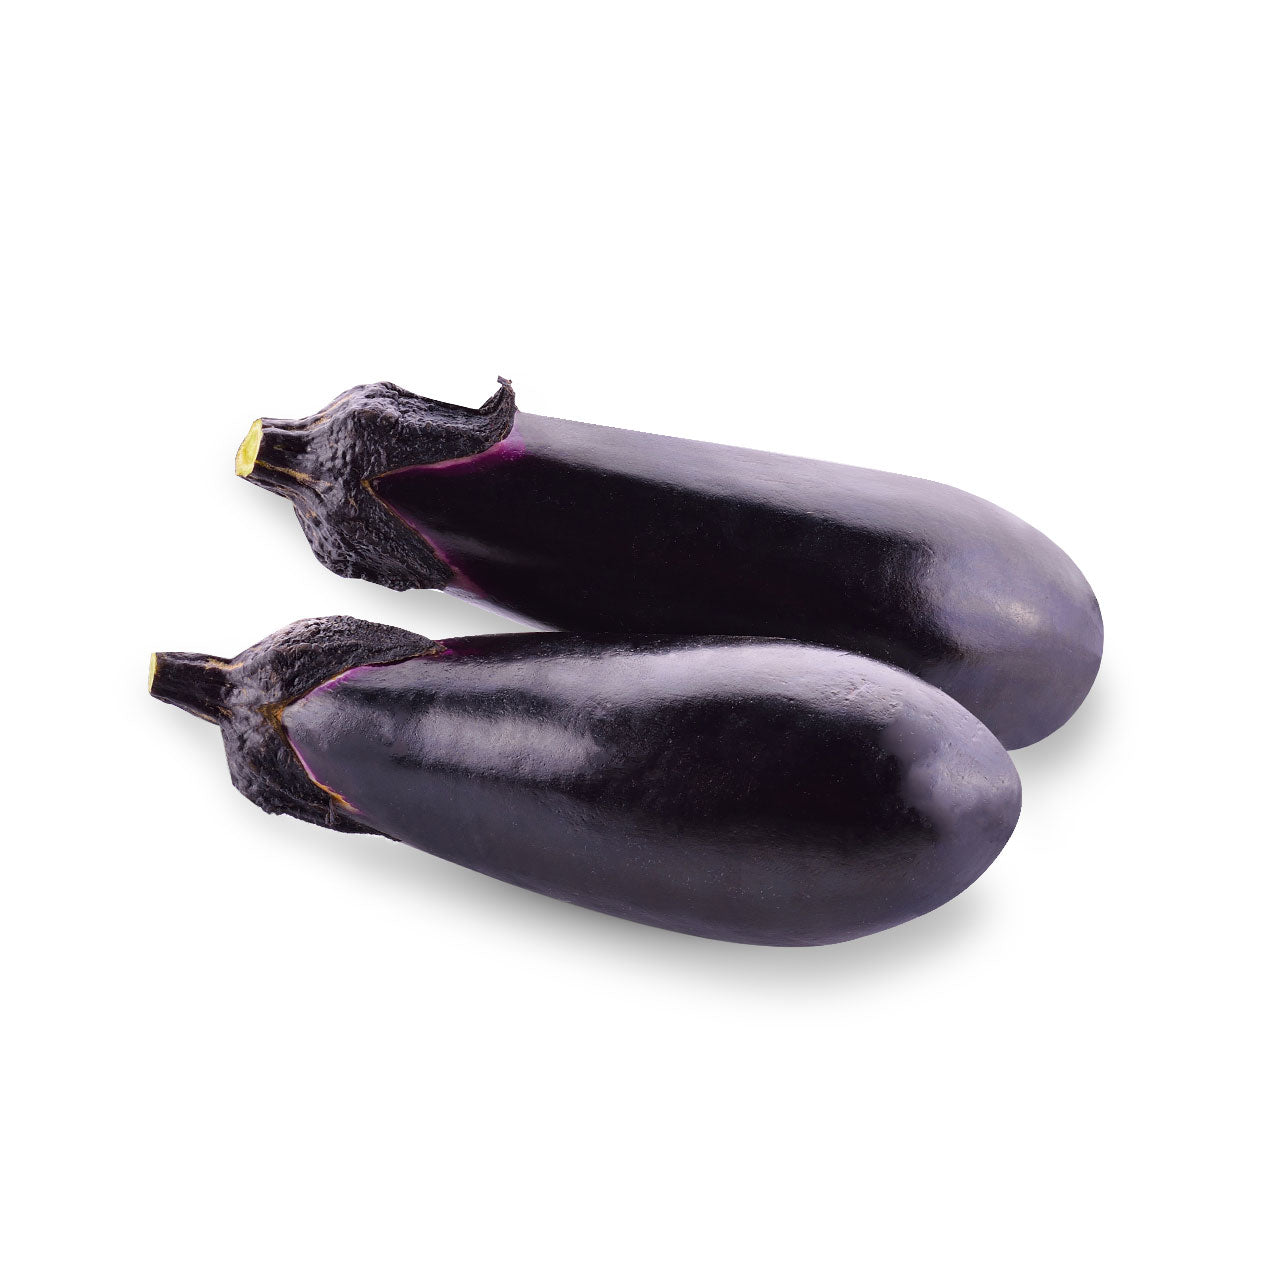 Nasu Japanese Eggplants Grocery Delivery to NY NJ